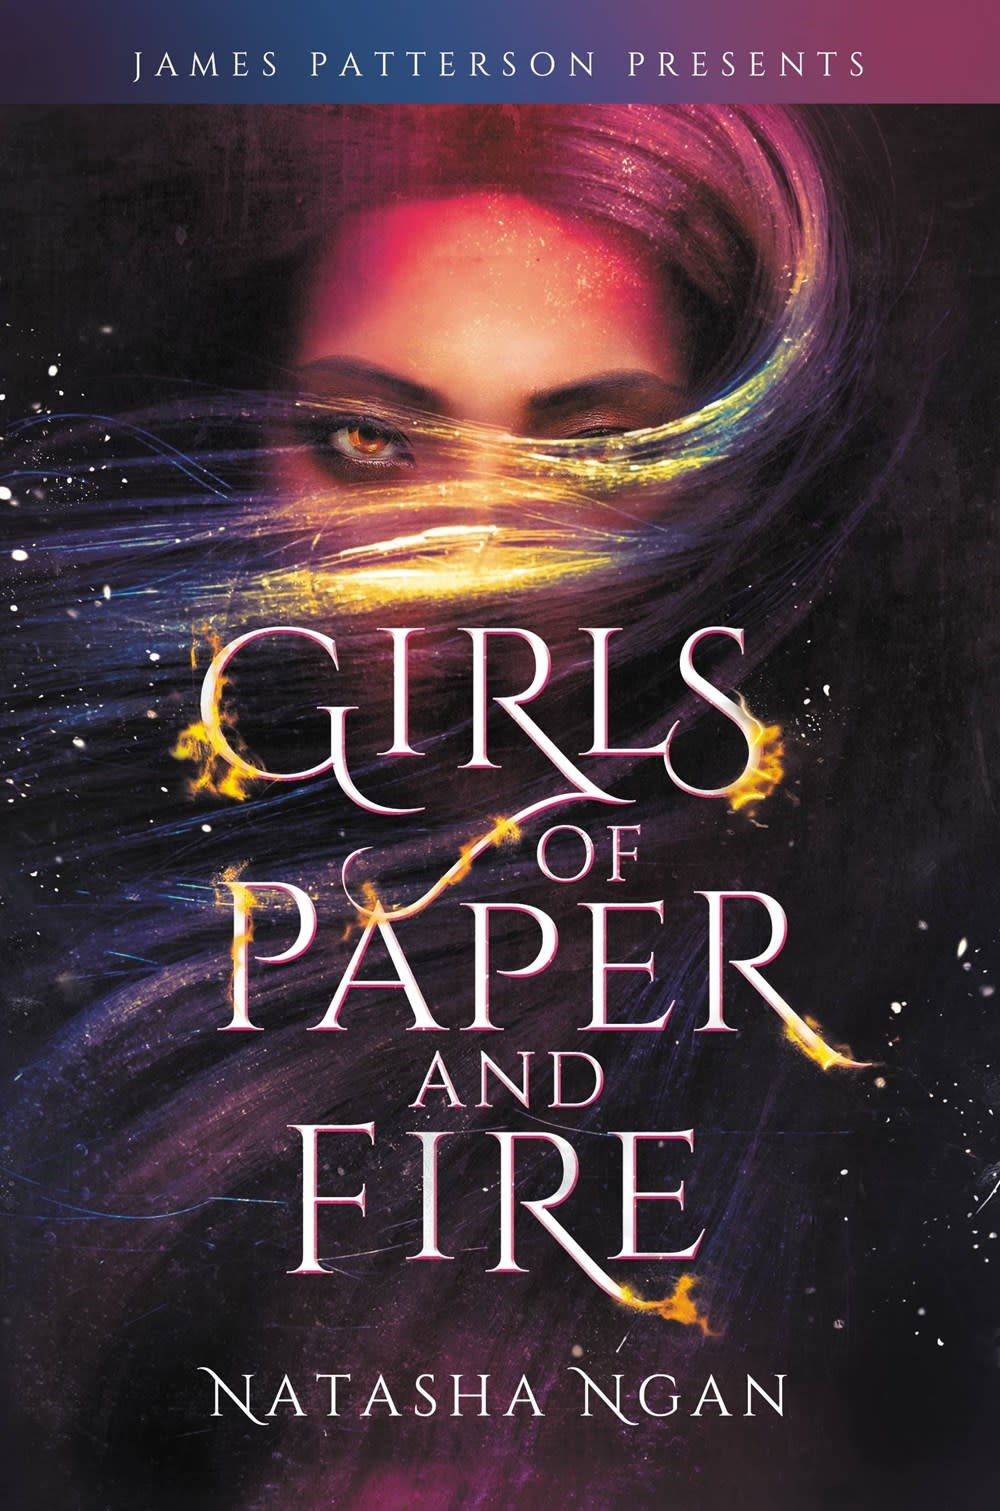 jimmy patterson Girls of Paper and Fire